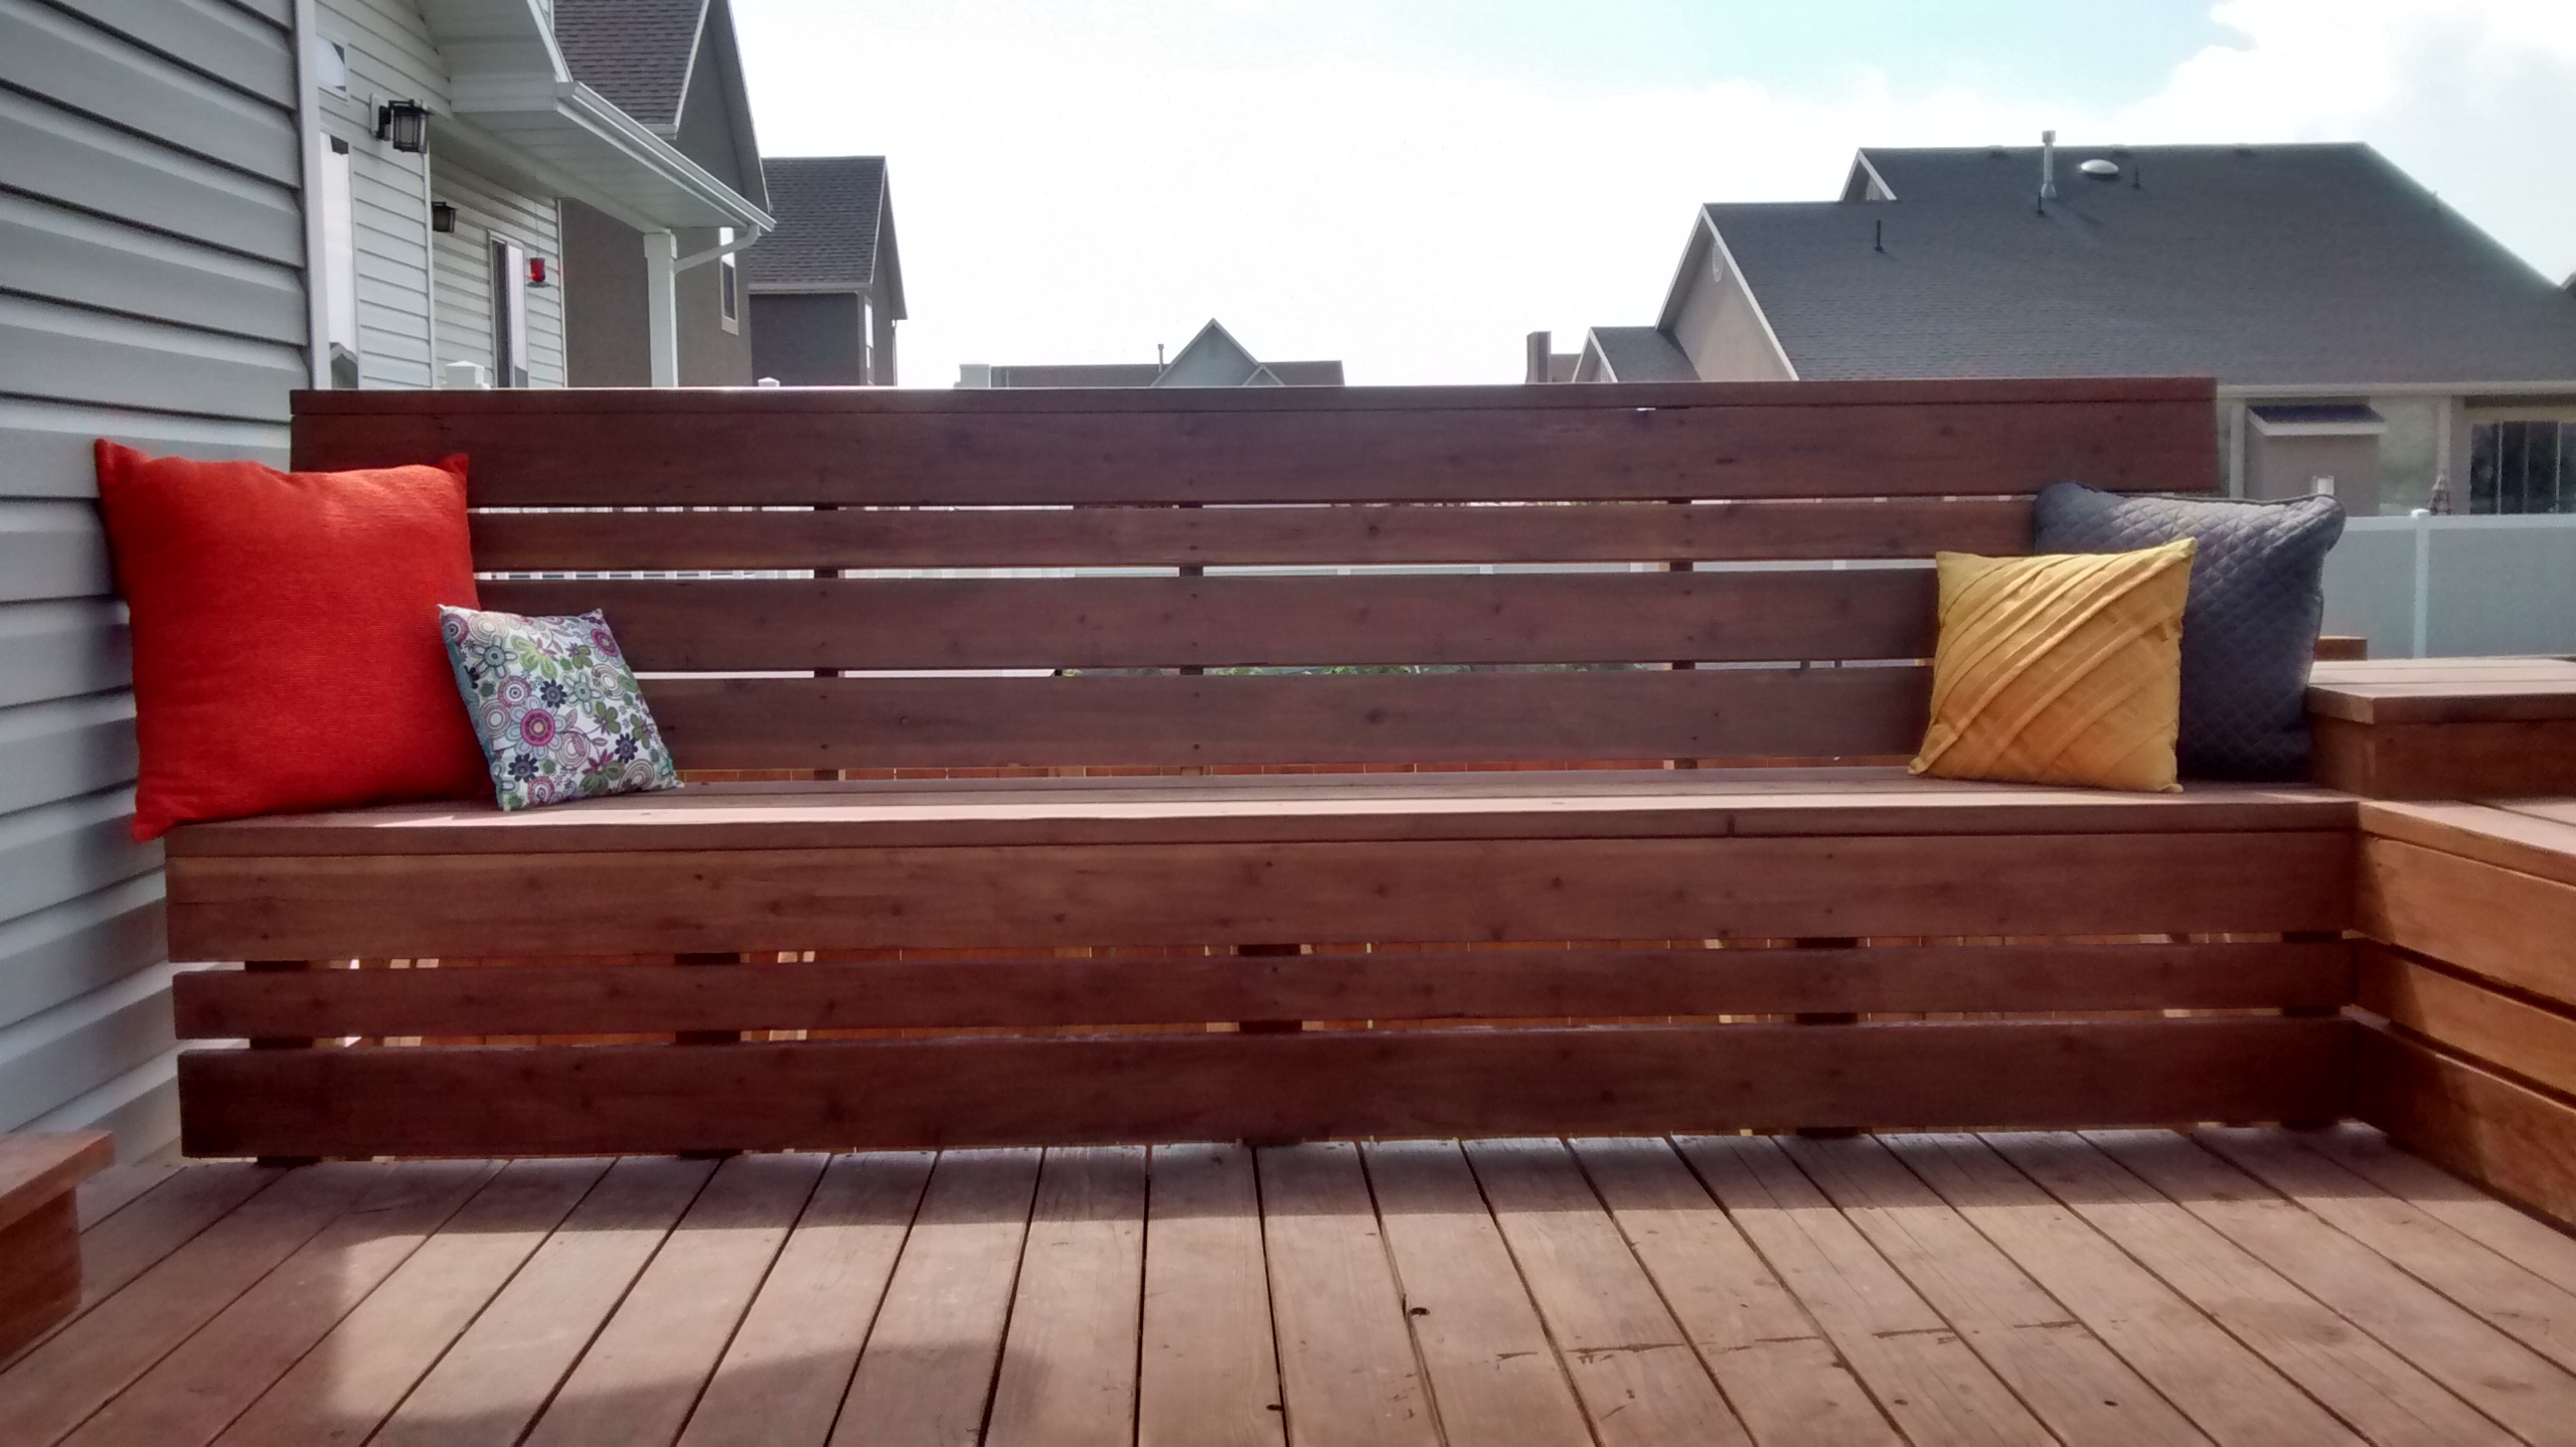 Albert Blog How To Build Space Saving Deck Benches For A